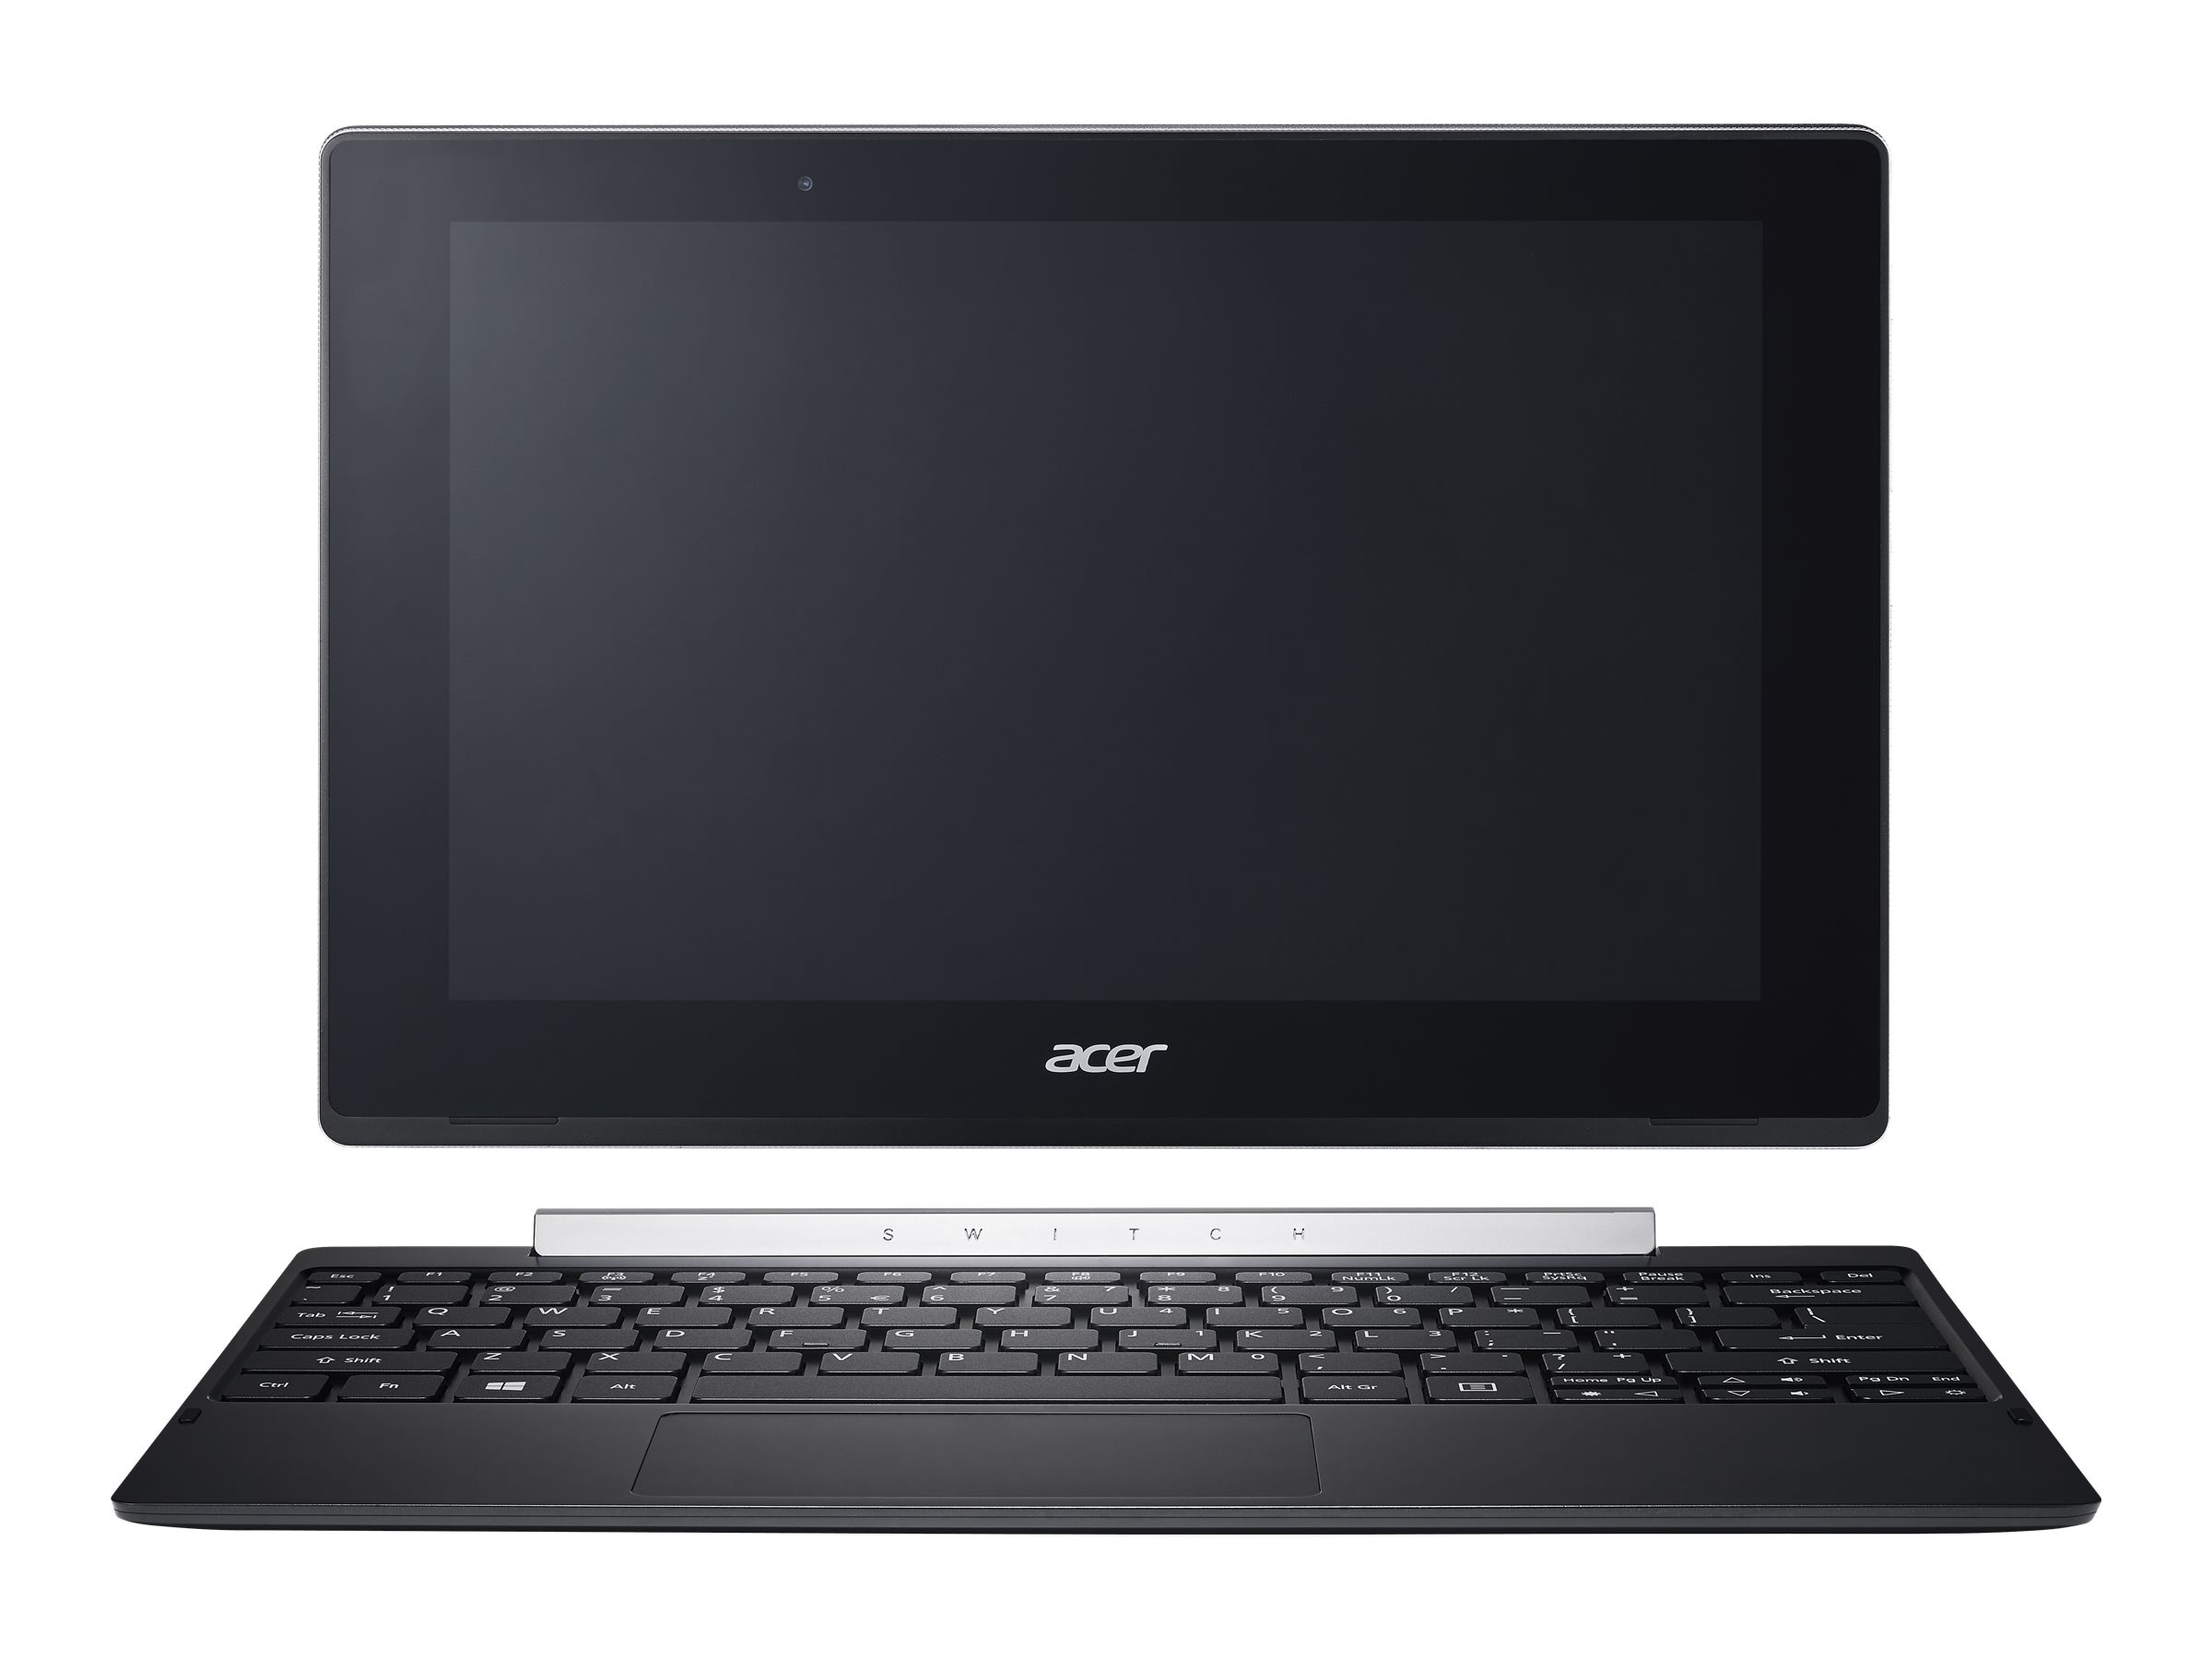 Acer NT.LCVAA.002 Image 4